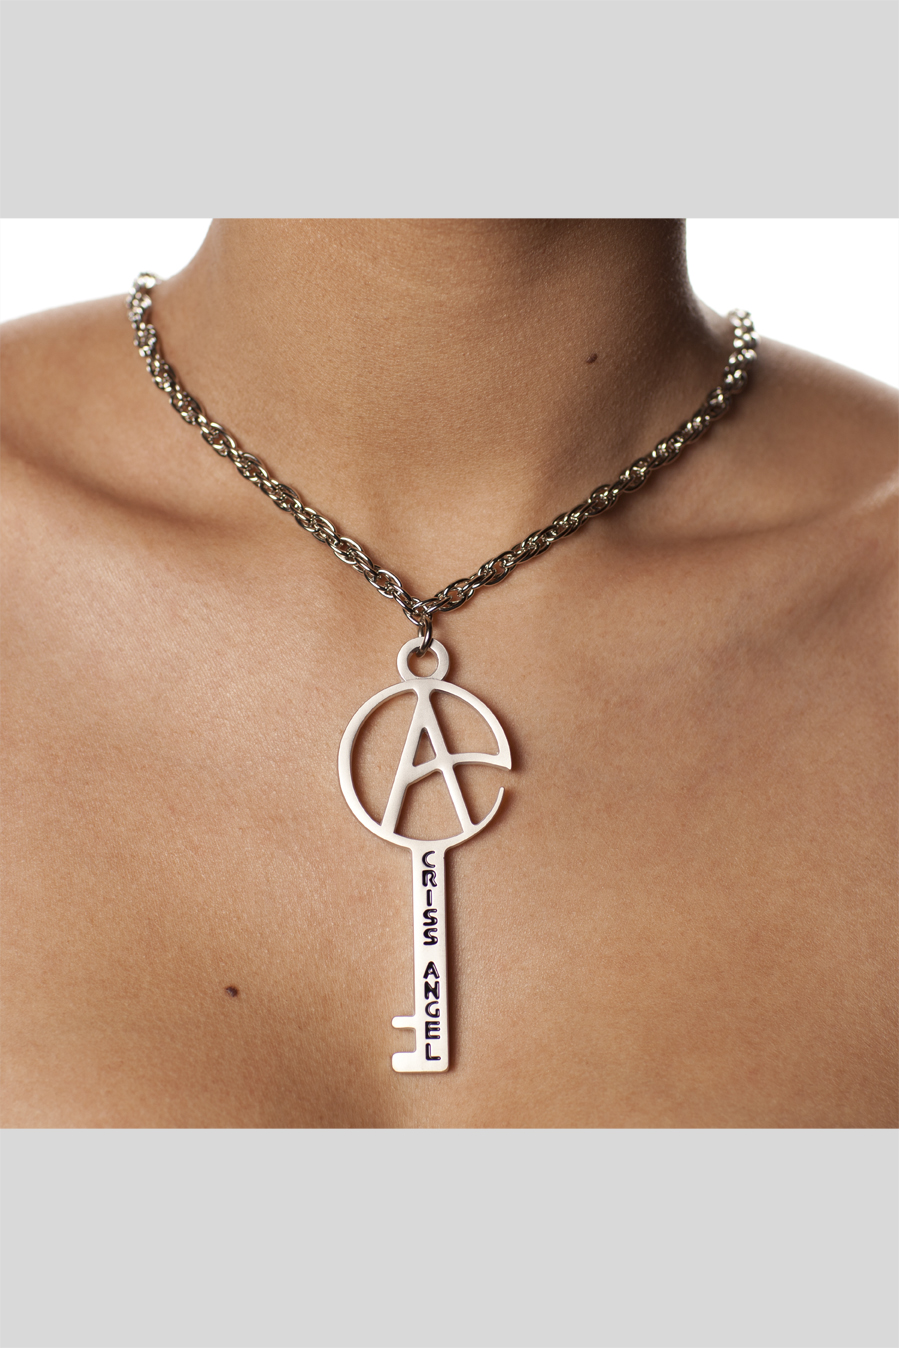 NECKLACE CA KEY TO BELIEVING-1423